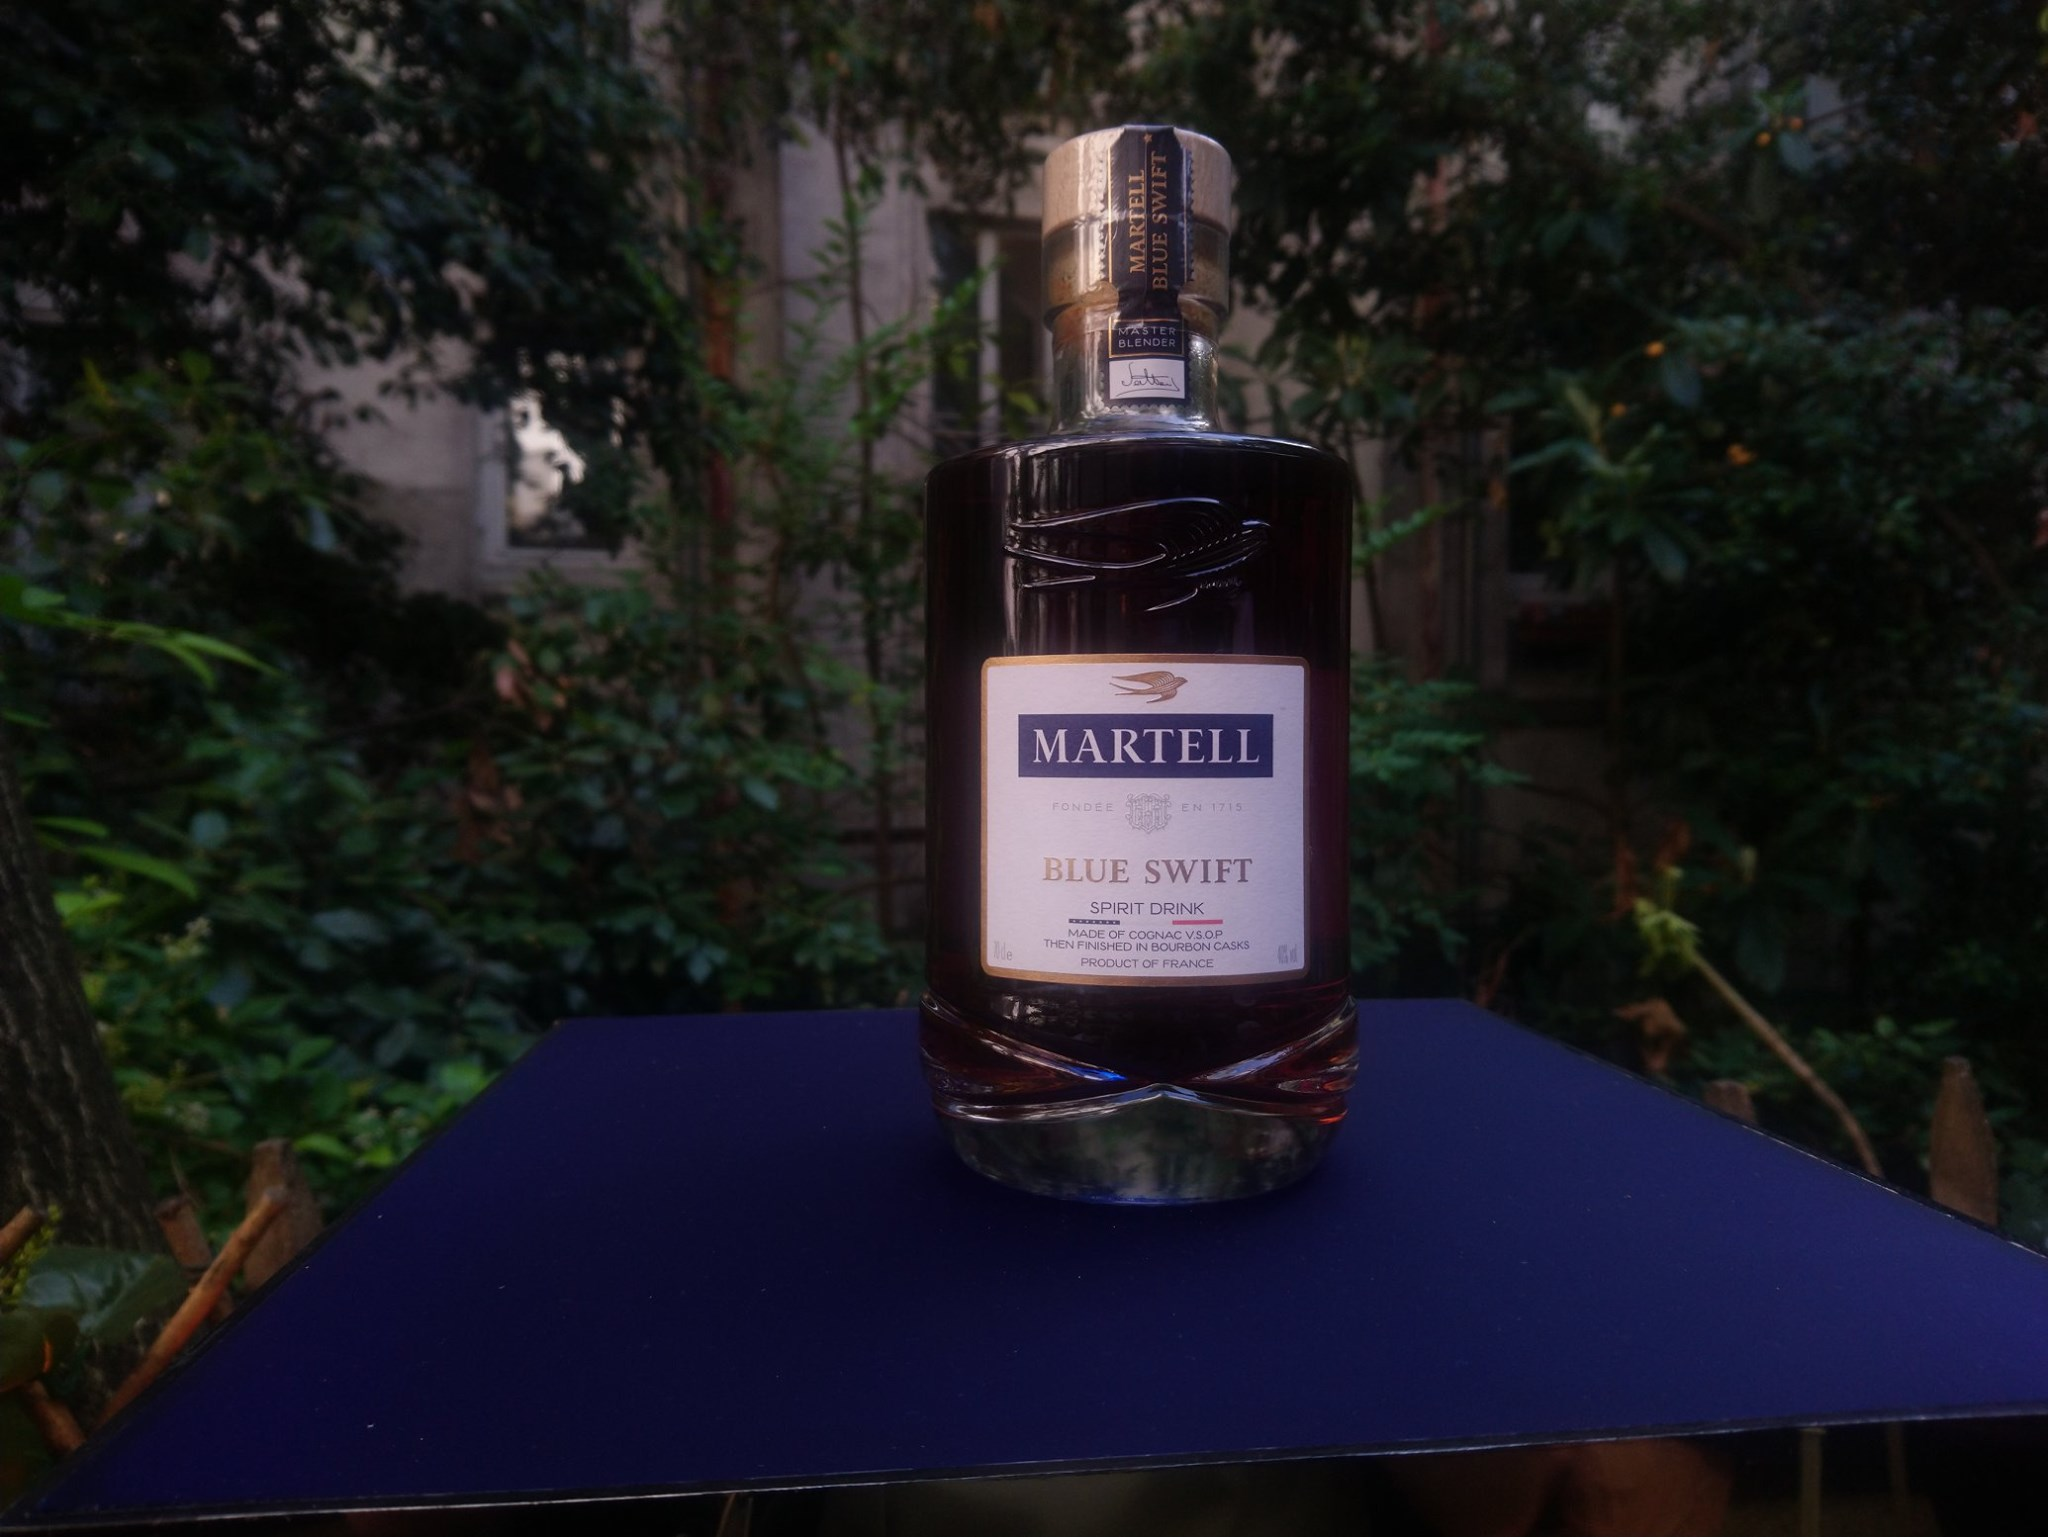 Martell Blue Swift - Flacon